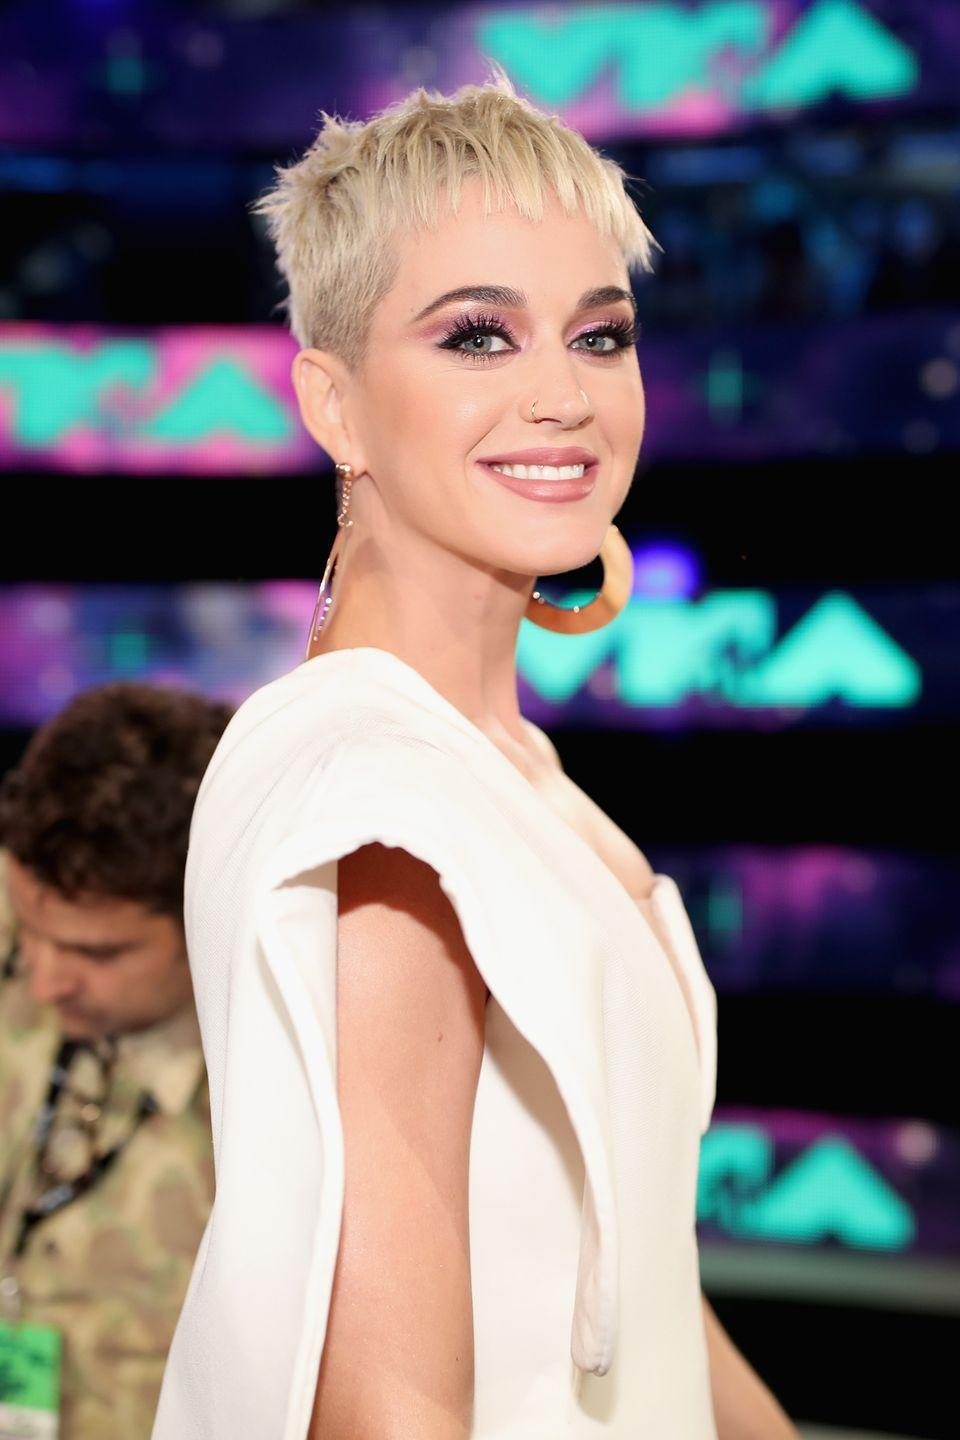 """<p>Not too long after """"Bad Blood"""" came out, Katy released this song. She said it was an """"anti-bullying anthem,"""" but it was, uh, <a href=""""https://www.marieclaire.com/celebrity/news/a28928/taylor-swift-references-you-missed-in-katy-perry-swish-swish-teaser/"""" rel=""""nofollow noopener"""" target=""""_blank"""" data-ylk=""""slk:pretty shady"""" class=""""link rapid-noclick-resp"""">pretty shady</a>. Luckily, <a href=""""https://www.cosmopolitan.com/entertainment/celebs/news/a61450/taylor-swift-katy-perry-feud-timeline/"""" rel=""""nofollow noopener"""" target=""""_blank"""" data-ylk=""""slk:Katy and Taylor Swift eventually made up"""" class=""""link rapid-noclick-resp"""">Katy and Taylor Swift eventually made up</a> ― Katy even <a href=""""https://www.goodhousekeeping.com/life/entertainment/a28067623/taylor-swift-you-need-to-calm-down-cast/"""" rel=""""nofollow noopener"""" target=""""_blank"""" data-ylk=""""slk:appeared in the music video"""" class=""""link rapid-noclick-resp"""">appeared in the music video</a> for Taylor's song """"You Need to Calm Down.""""</p>"""